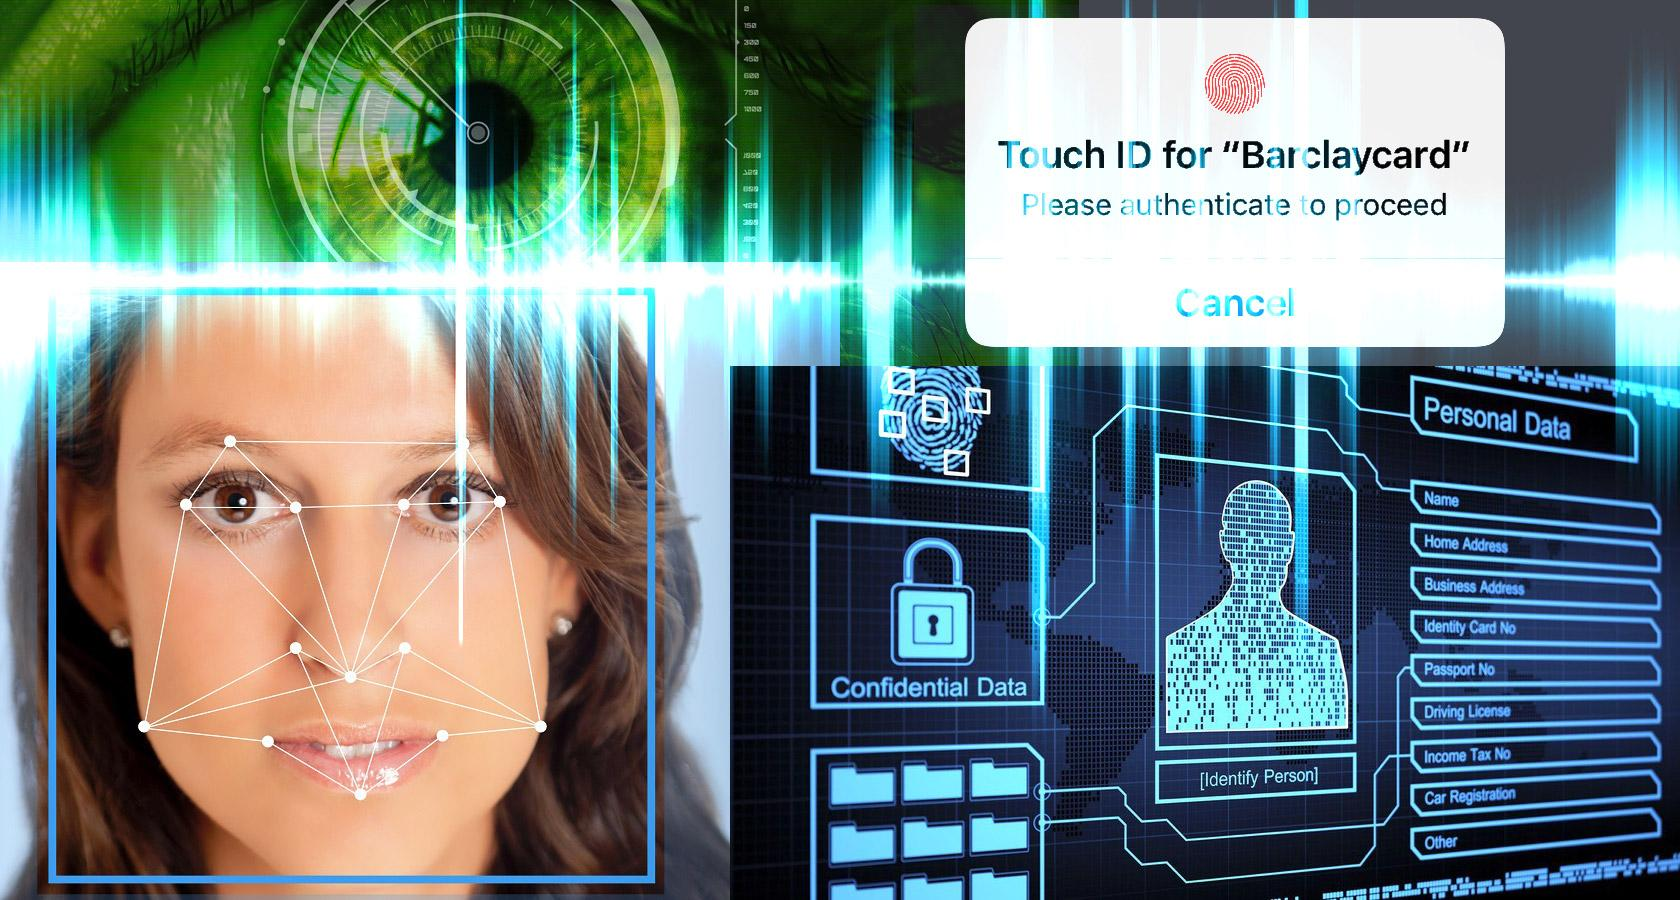 Biometric identification and personal data security, web forms